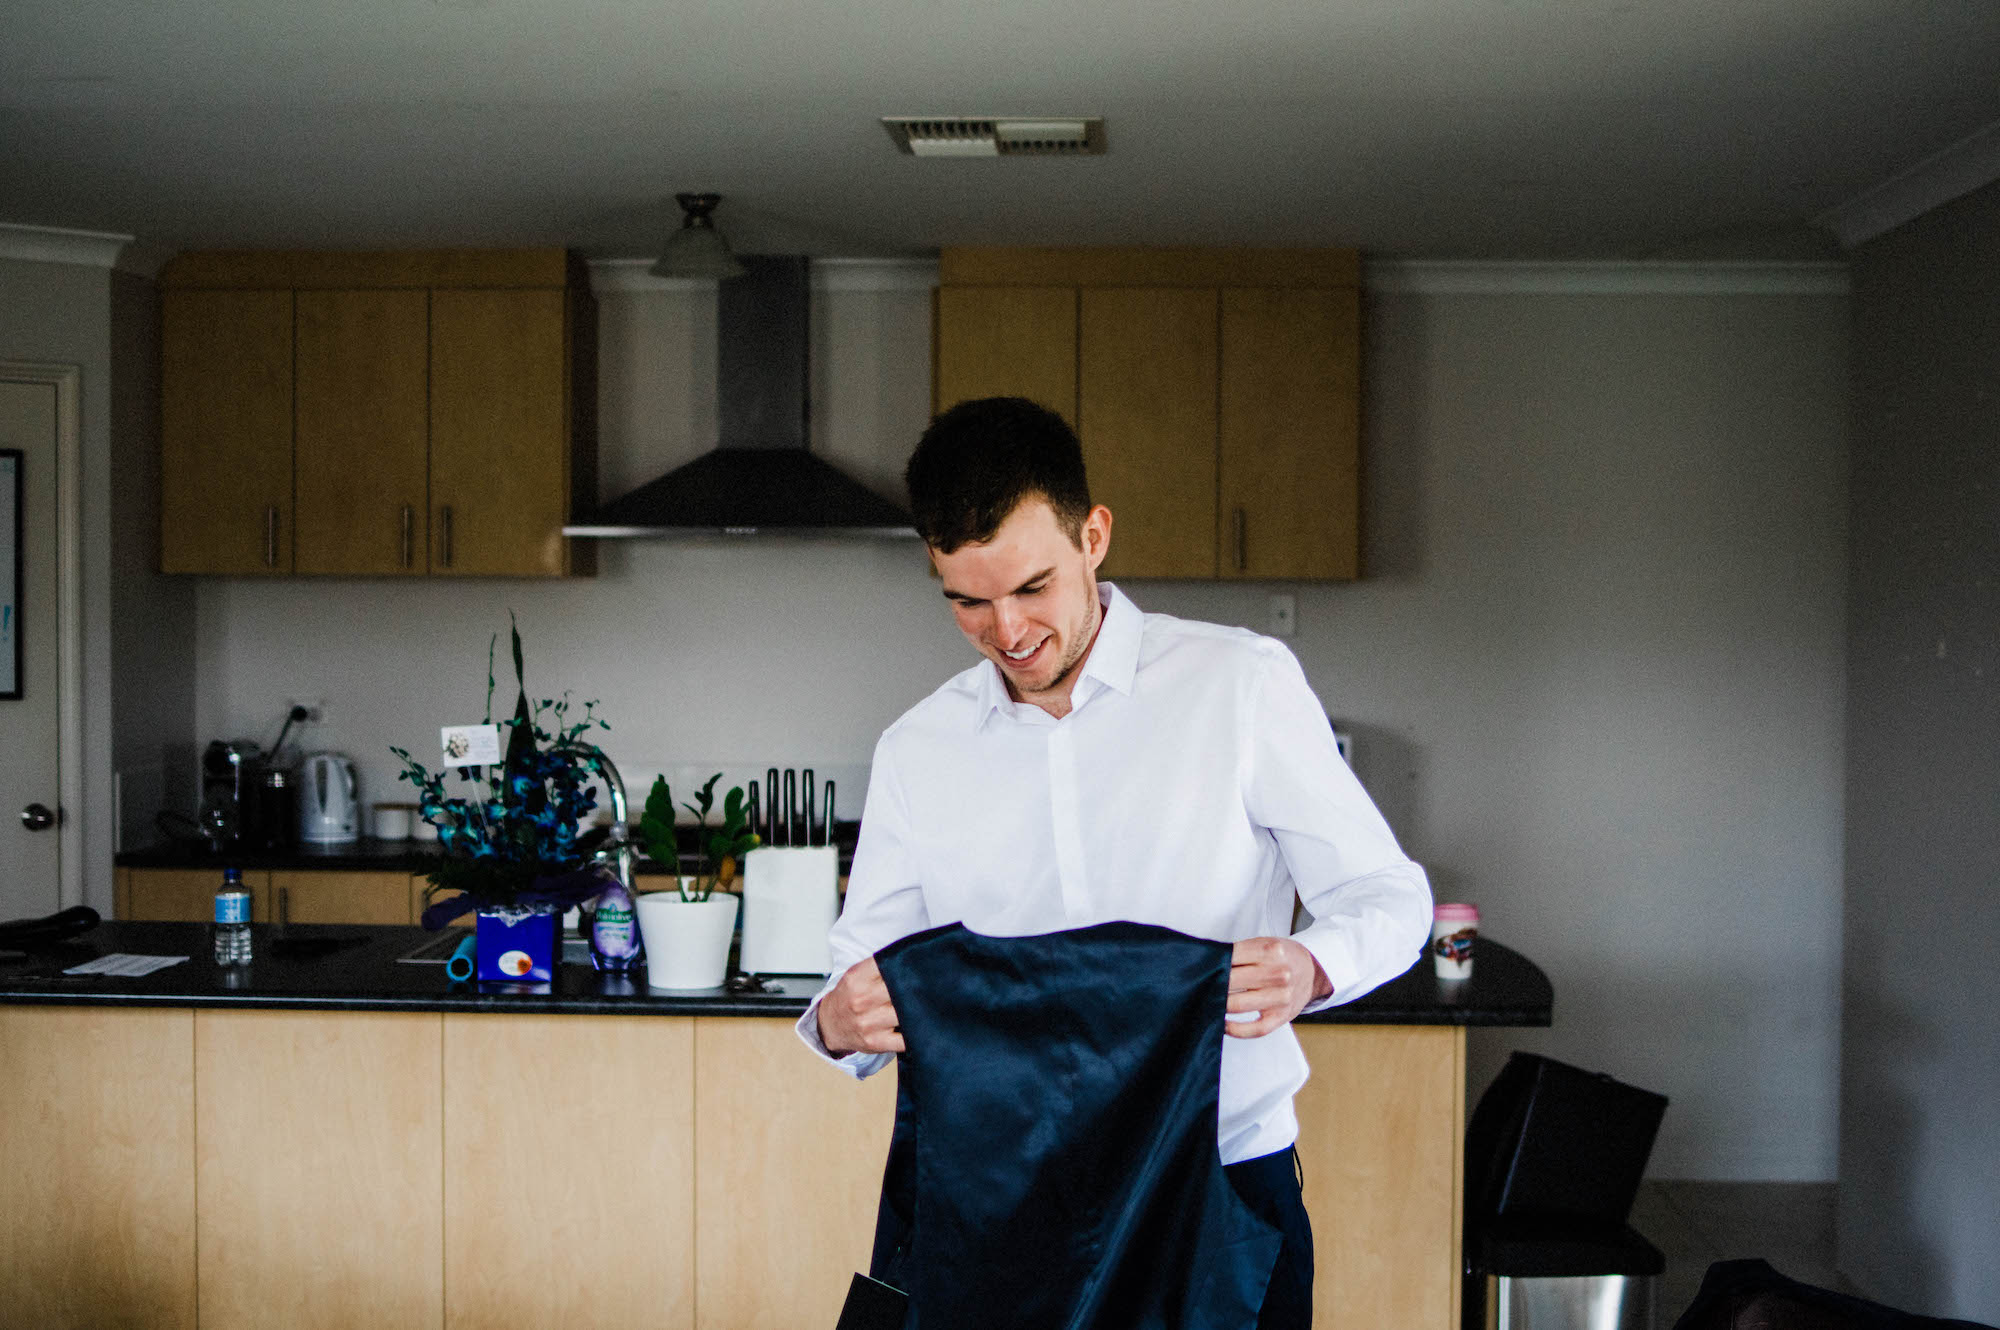 The groom getting his vest ready to wear before his wedding.